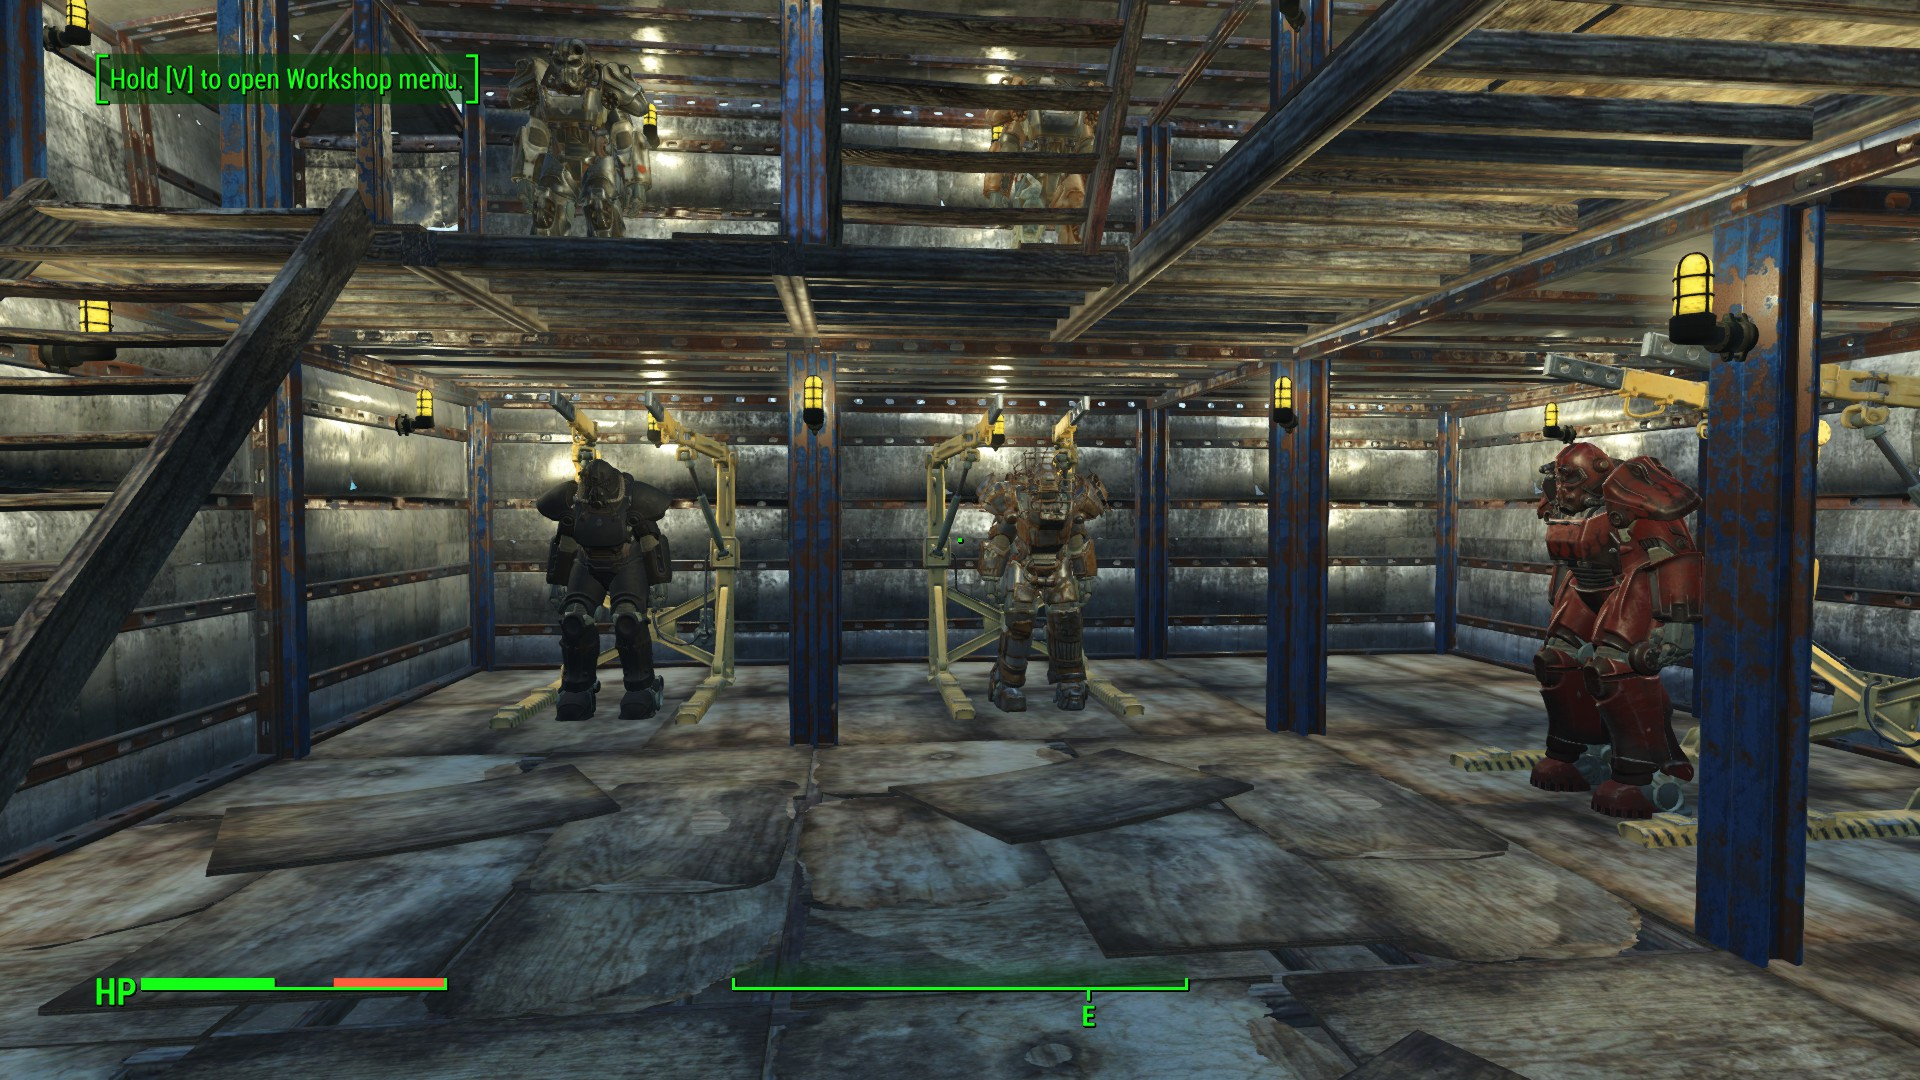 Fallout 4 players are building very cool power armor for Best house designs fallout 4